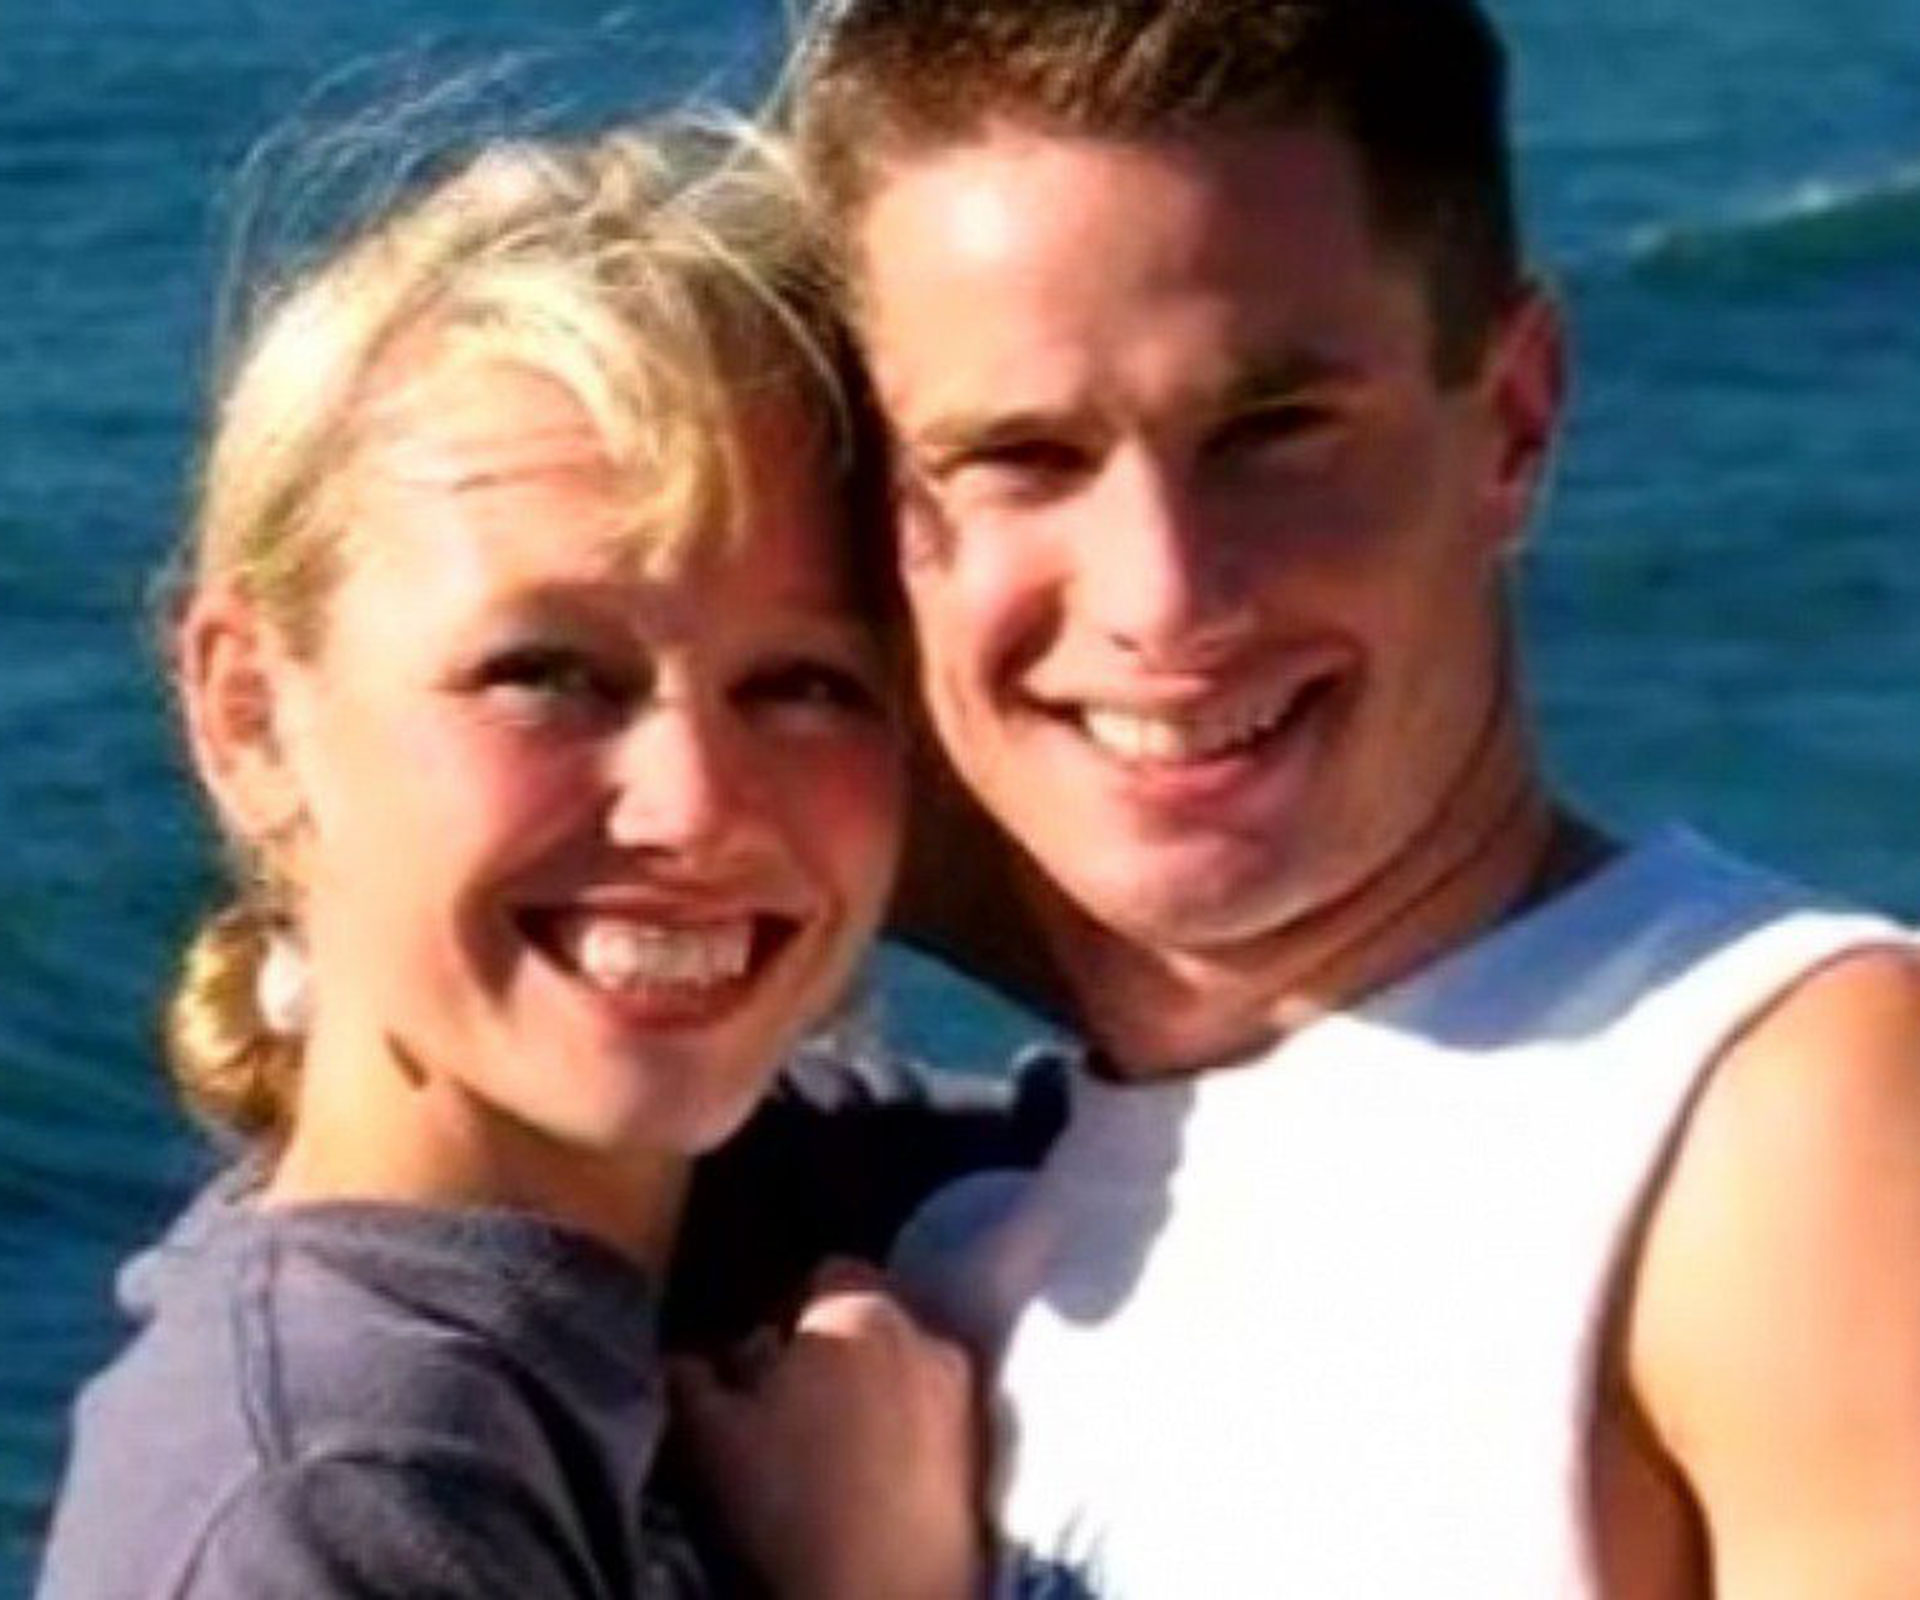 Sherri Papini Reveals Details of Kidnappers, Harrowing Ordeal